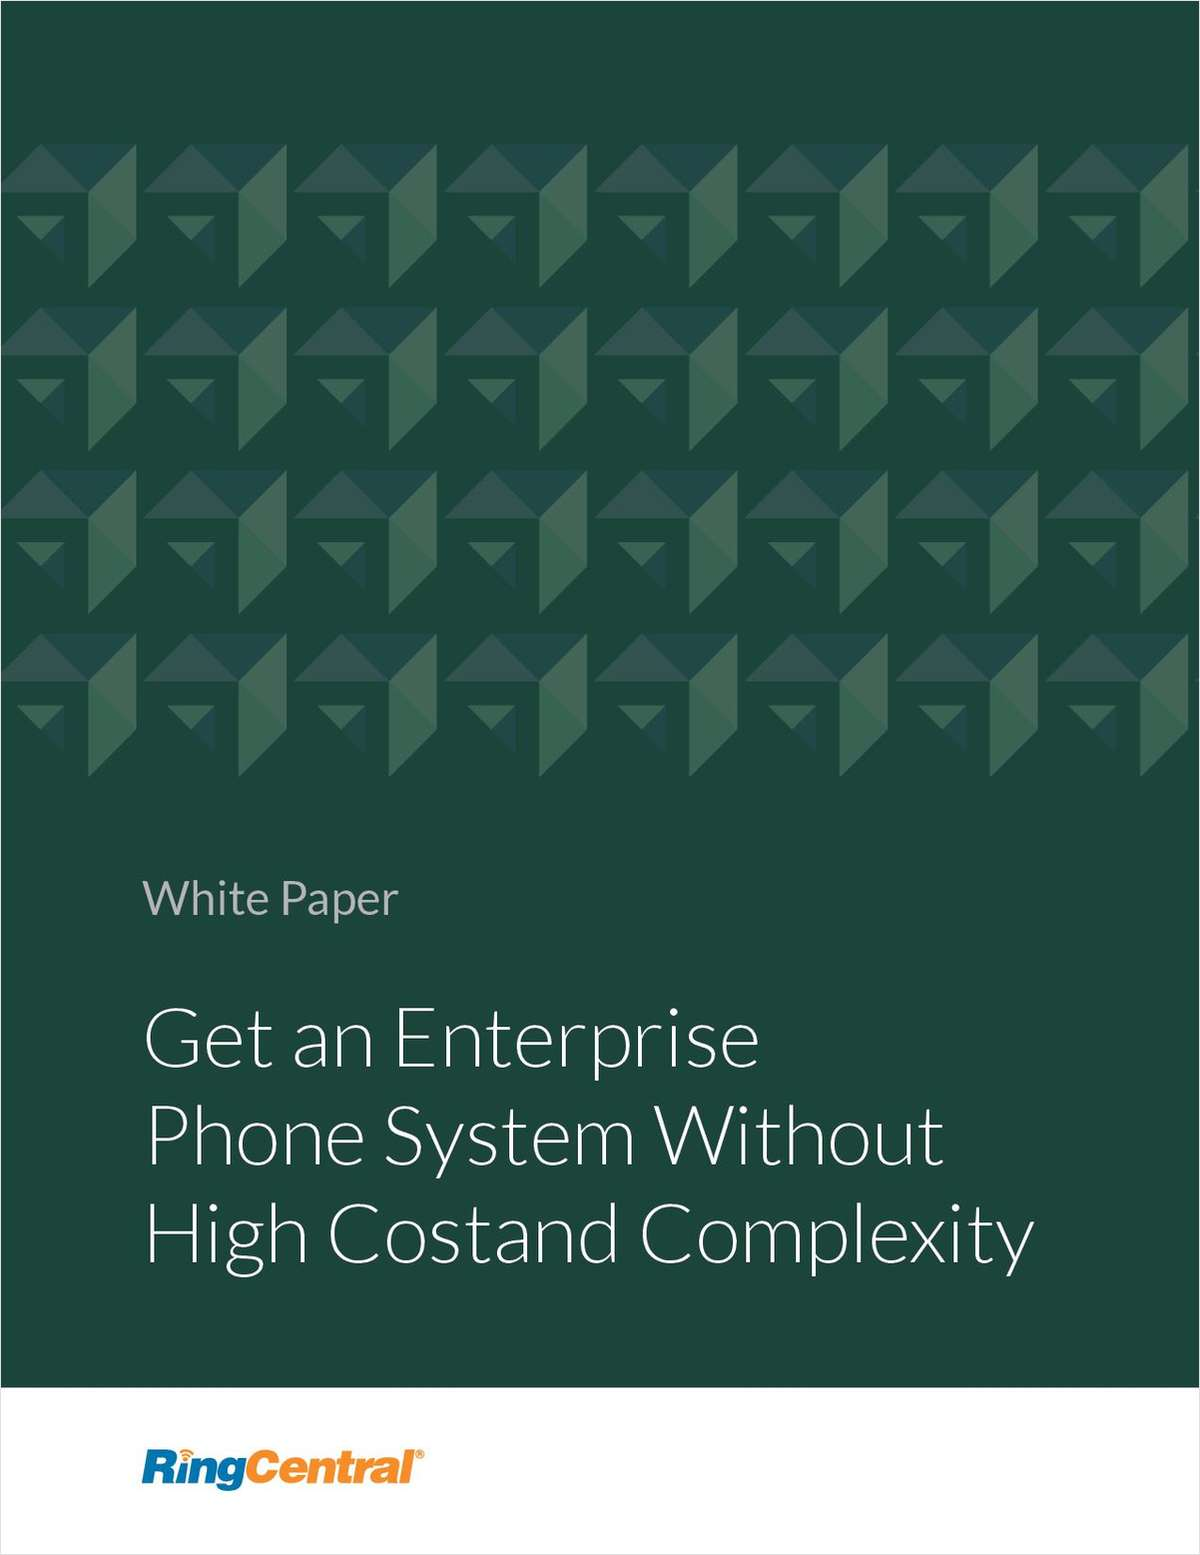 Get an Enterprise Phone System Without High Cost and Complexity